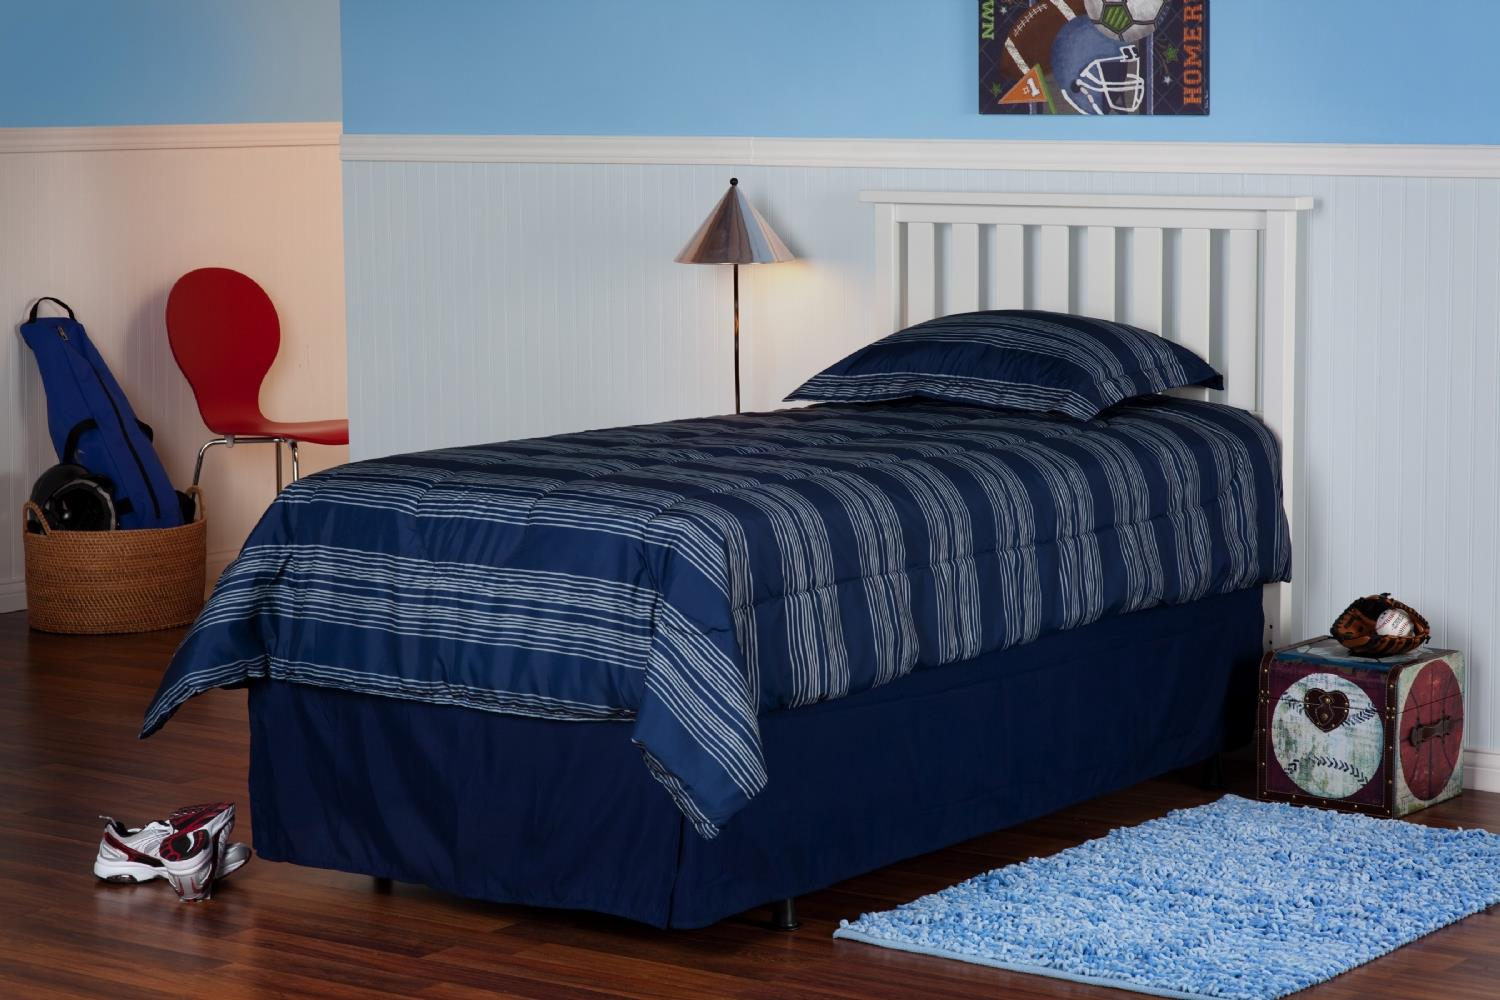 Fashion Bed Group Belmont Twin Headboard - Item Number: 51C523